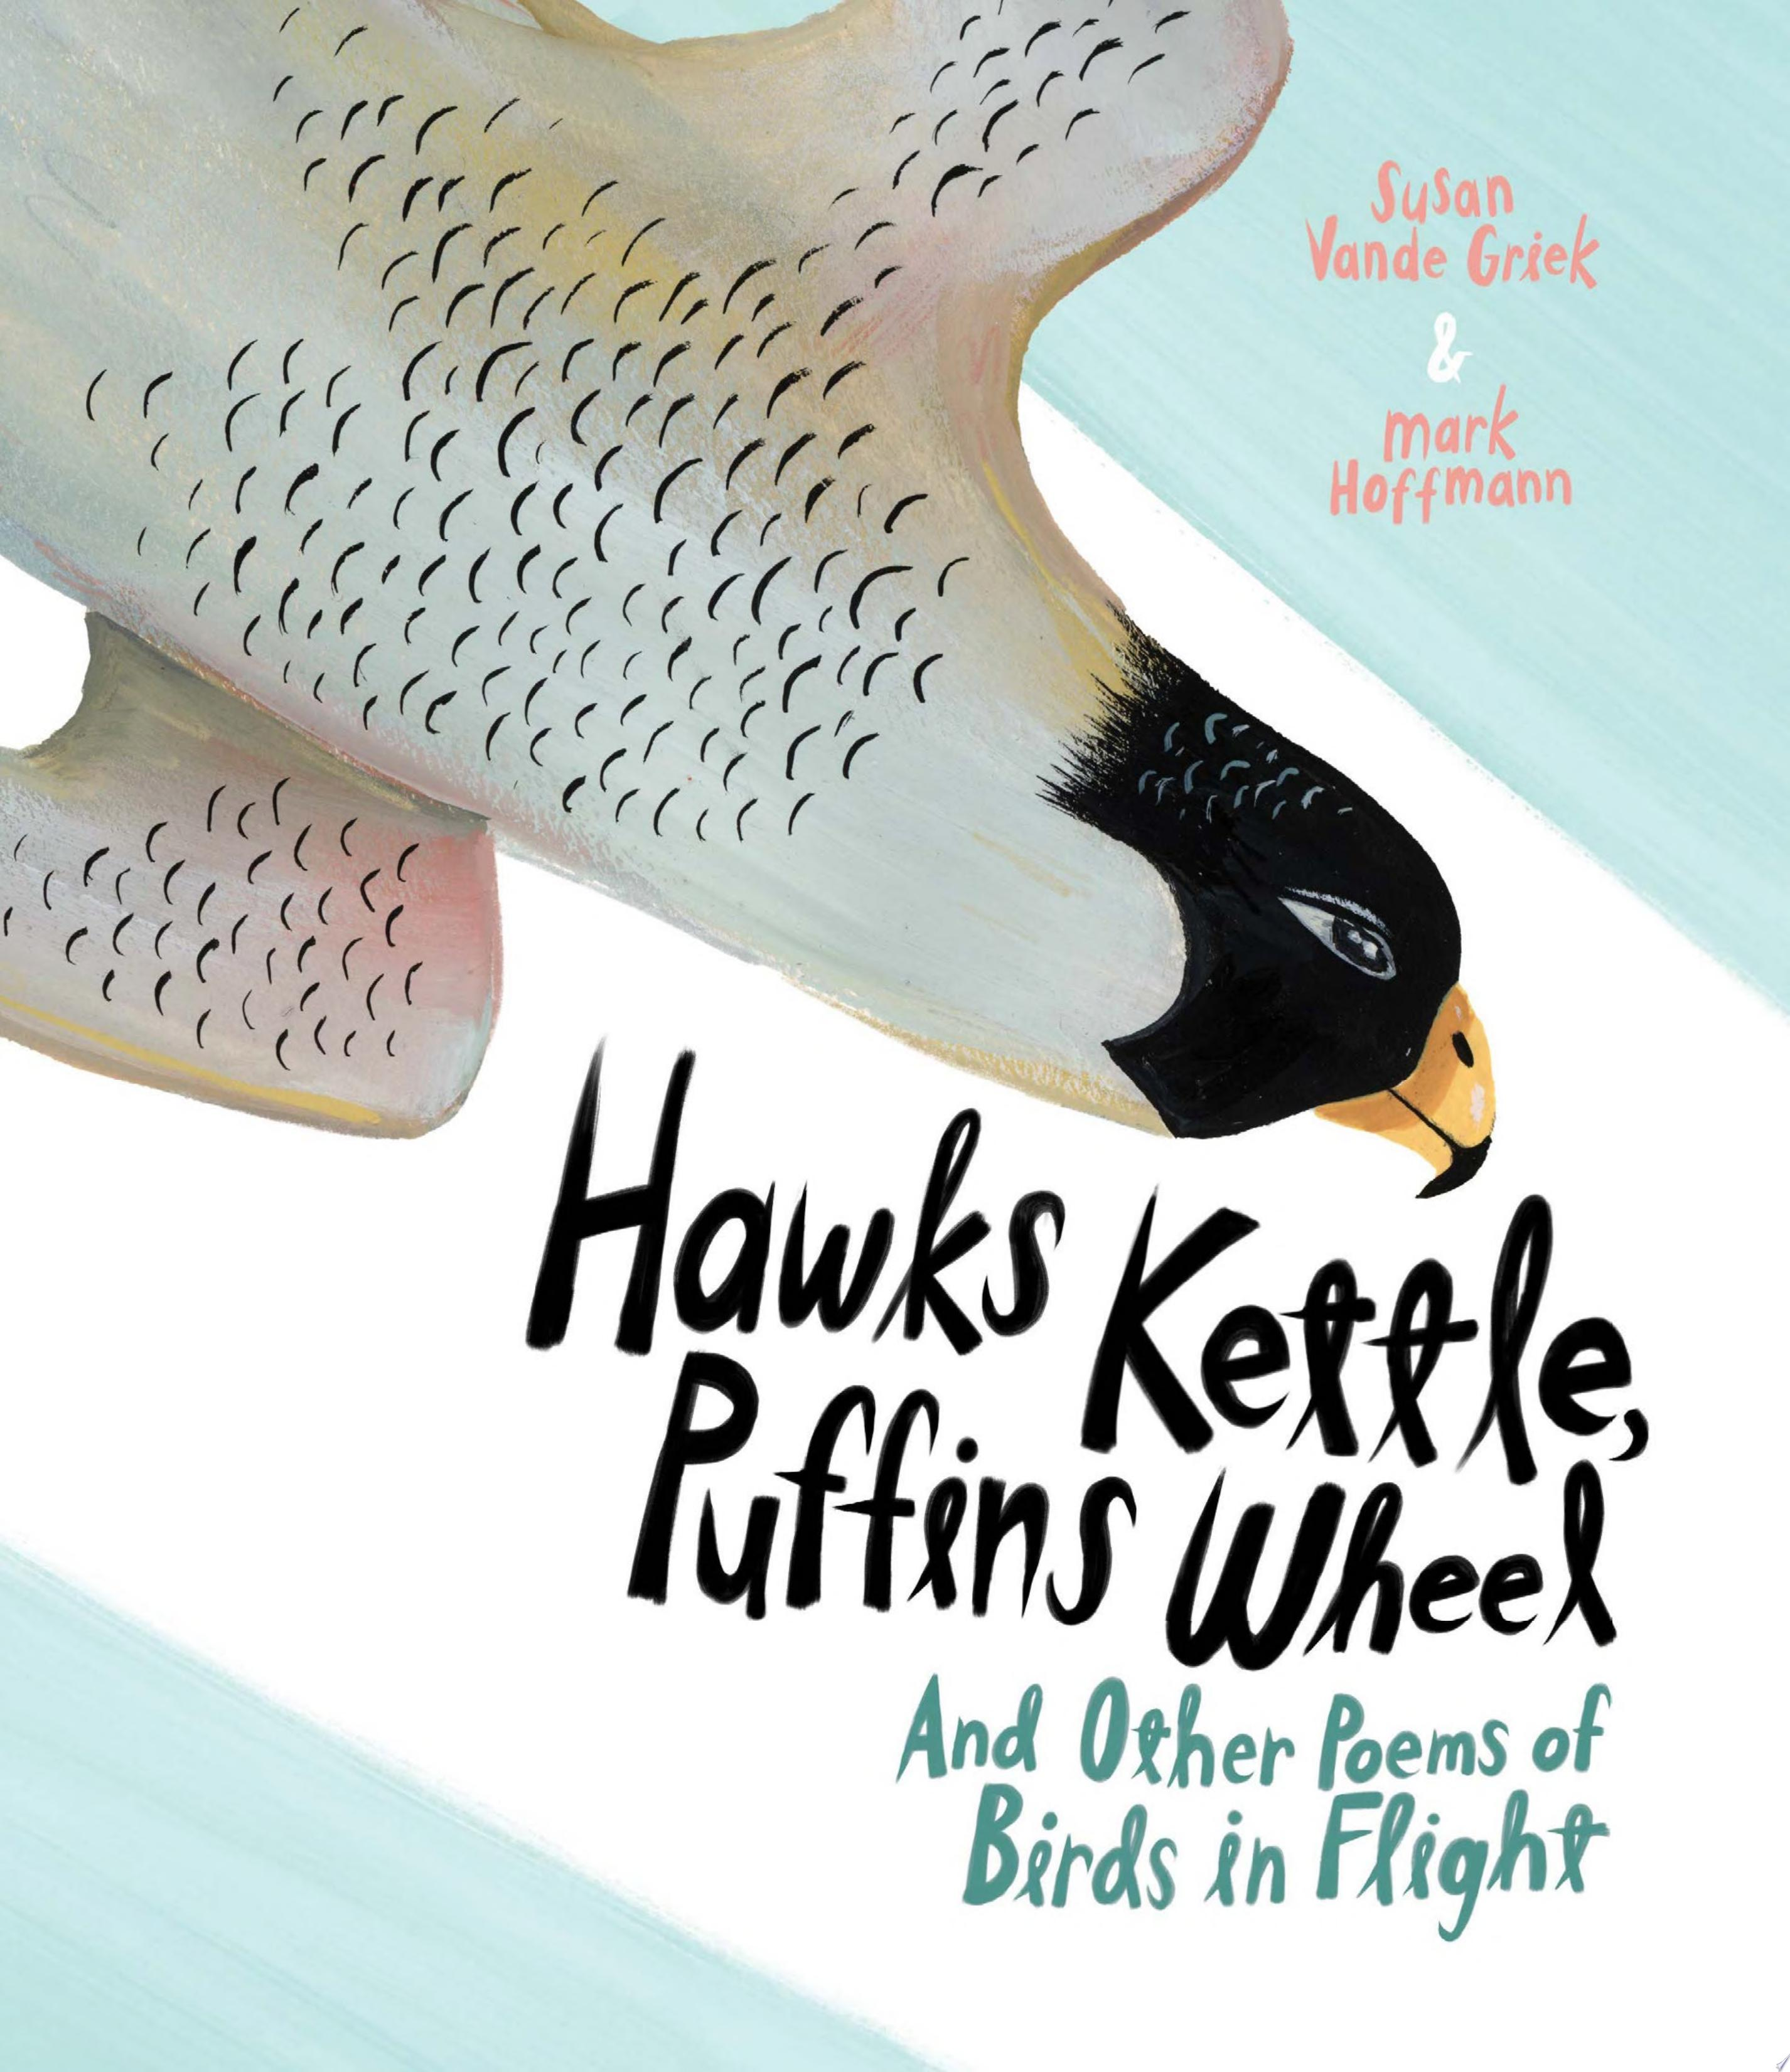 "Image for ""Hawks Kettle, Puffins Wheel"""